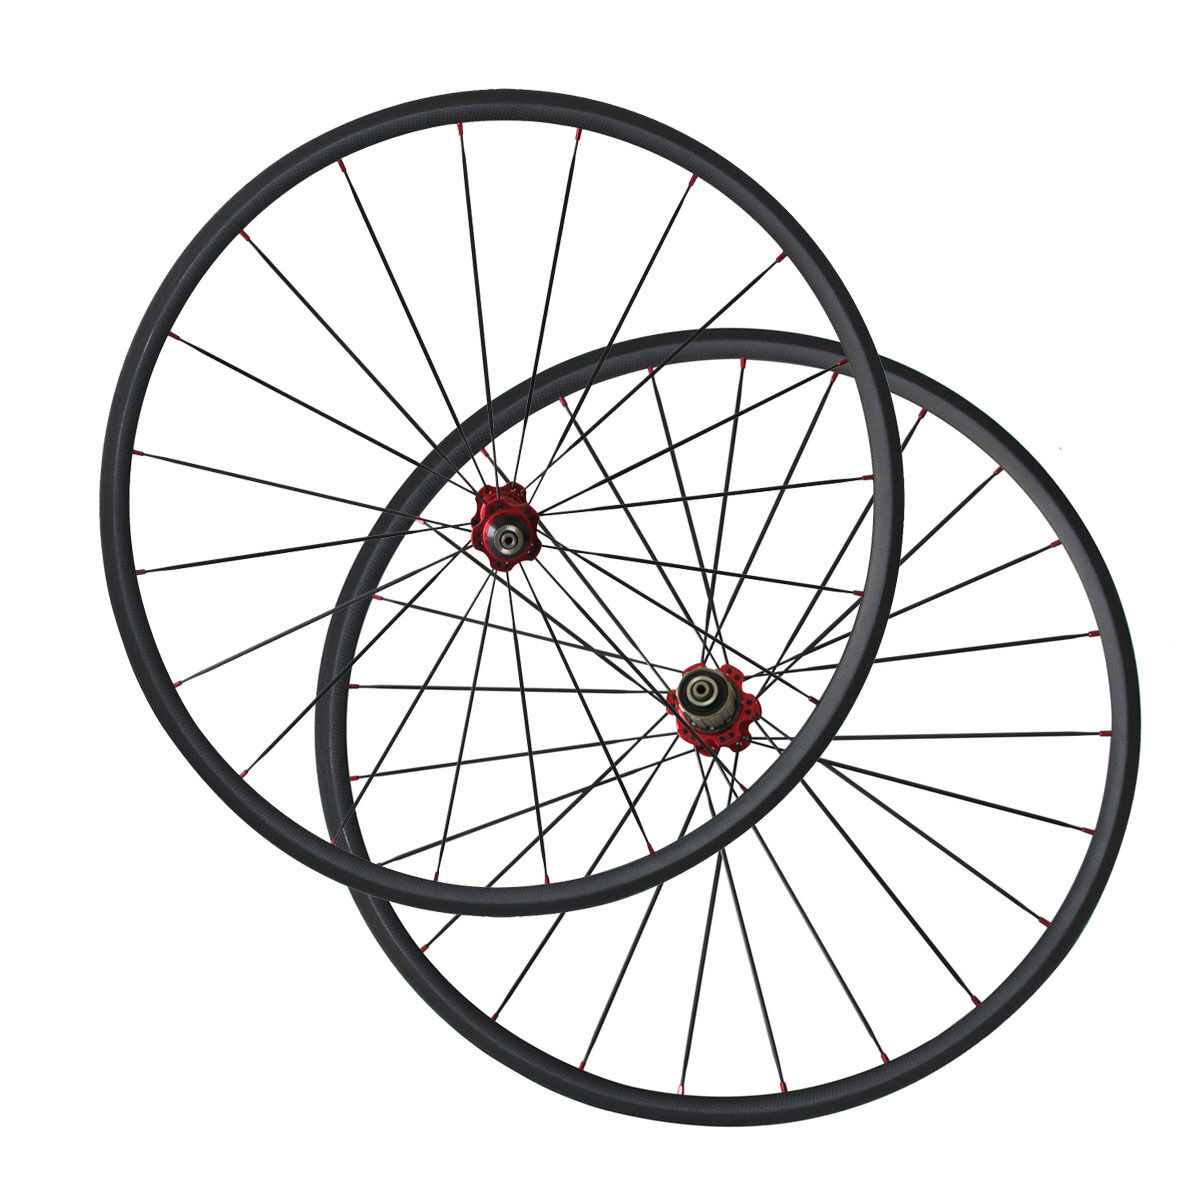 700C 24mm Clincher carbon road bike wheels    23mm rim width  wholesape cheap